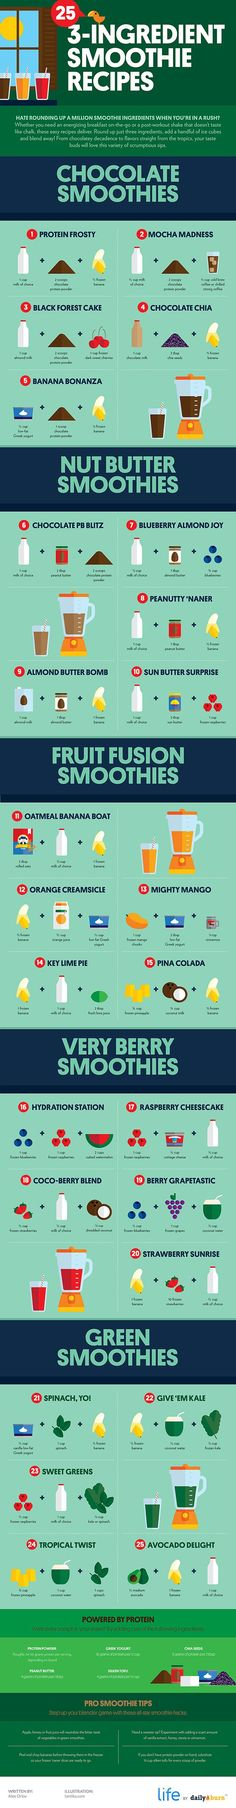 25 3-Ingredient Smoothie Recipes Infographic